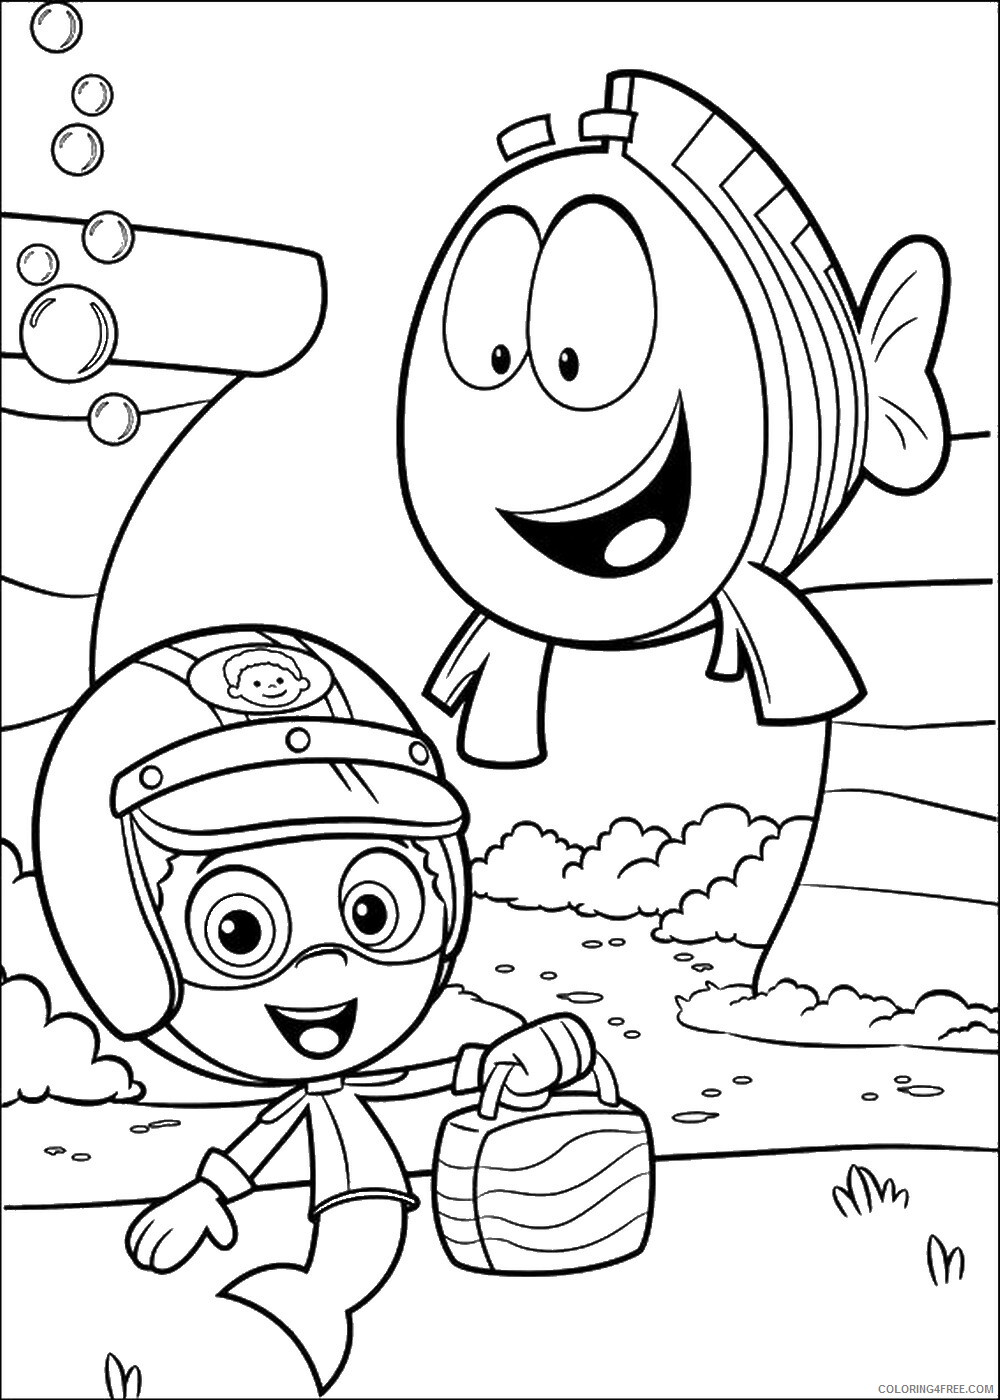 Bubble Guppies Coloring Pages TV Film bubble_guppies_cl26 Printable 2020 01557 Coloring4free